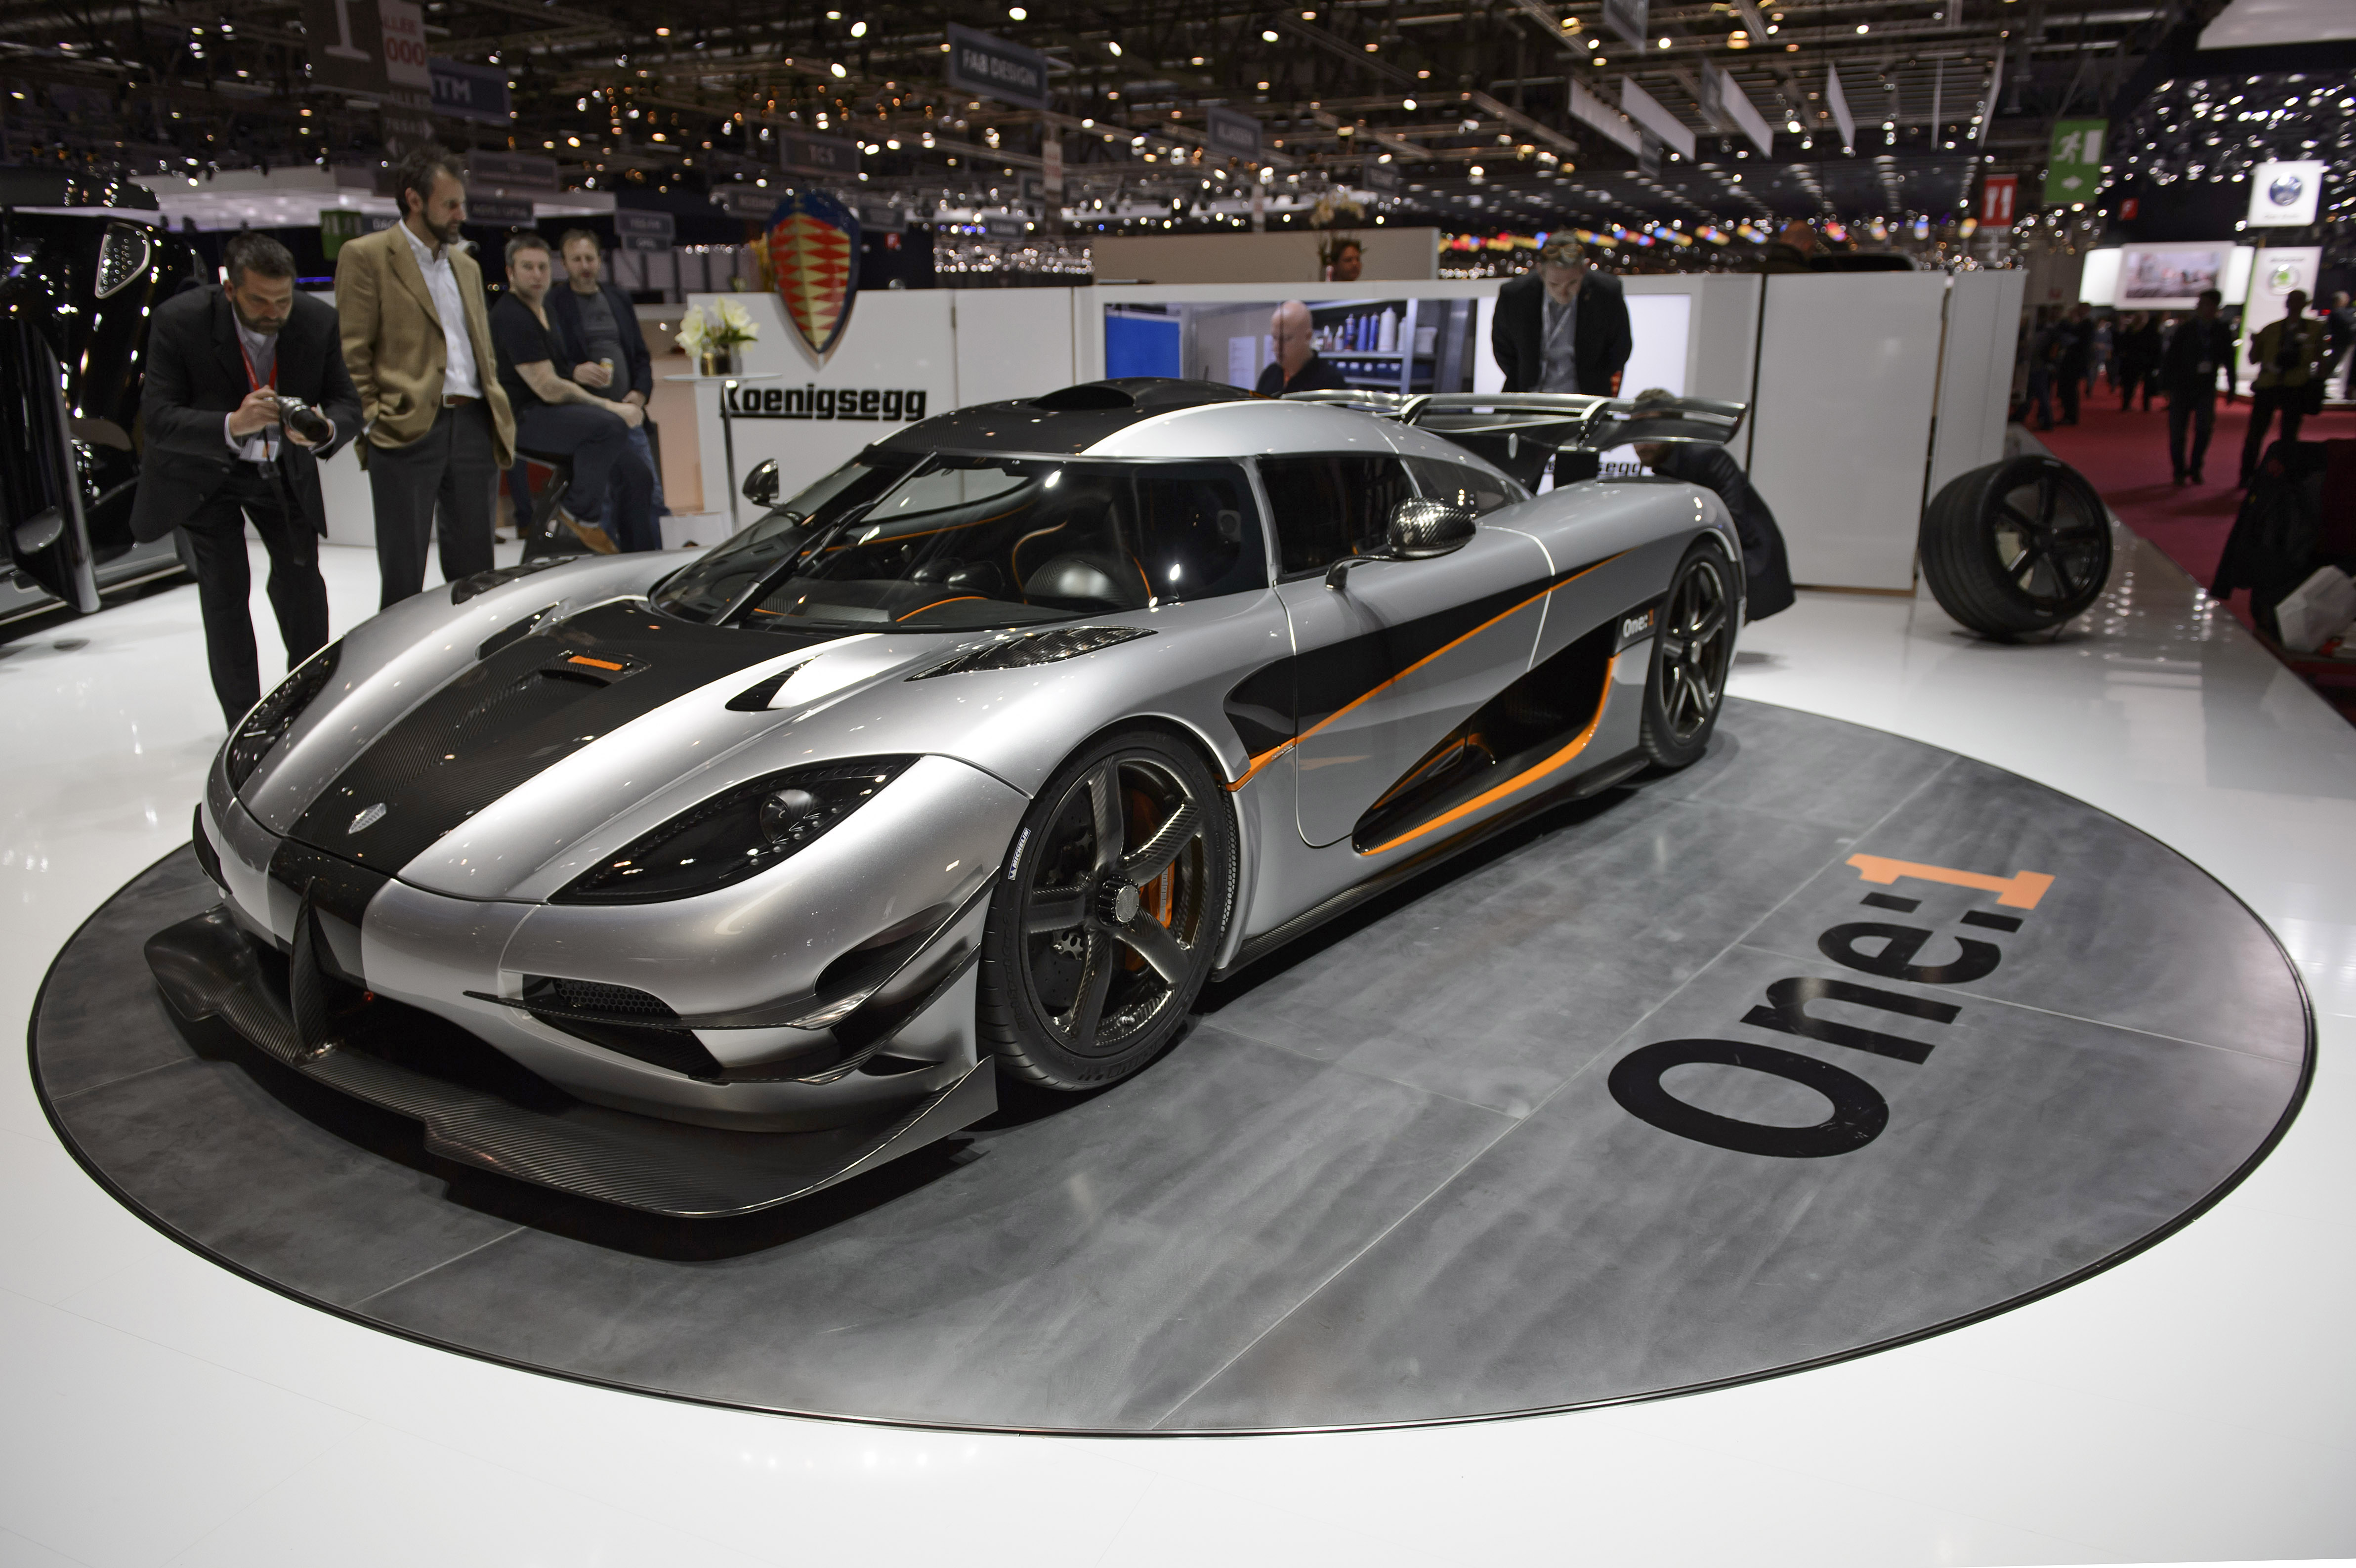 Geneva the most stunning supercars at geneva motor show the new koenigsegg one1 is presented during the press day at the 84th geneva sciox Images